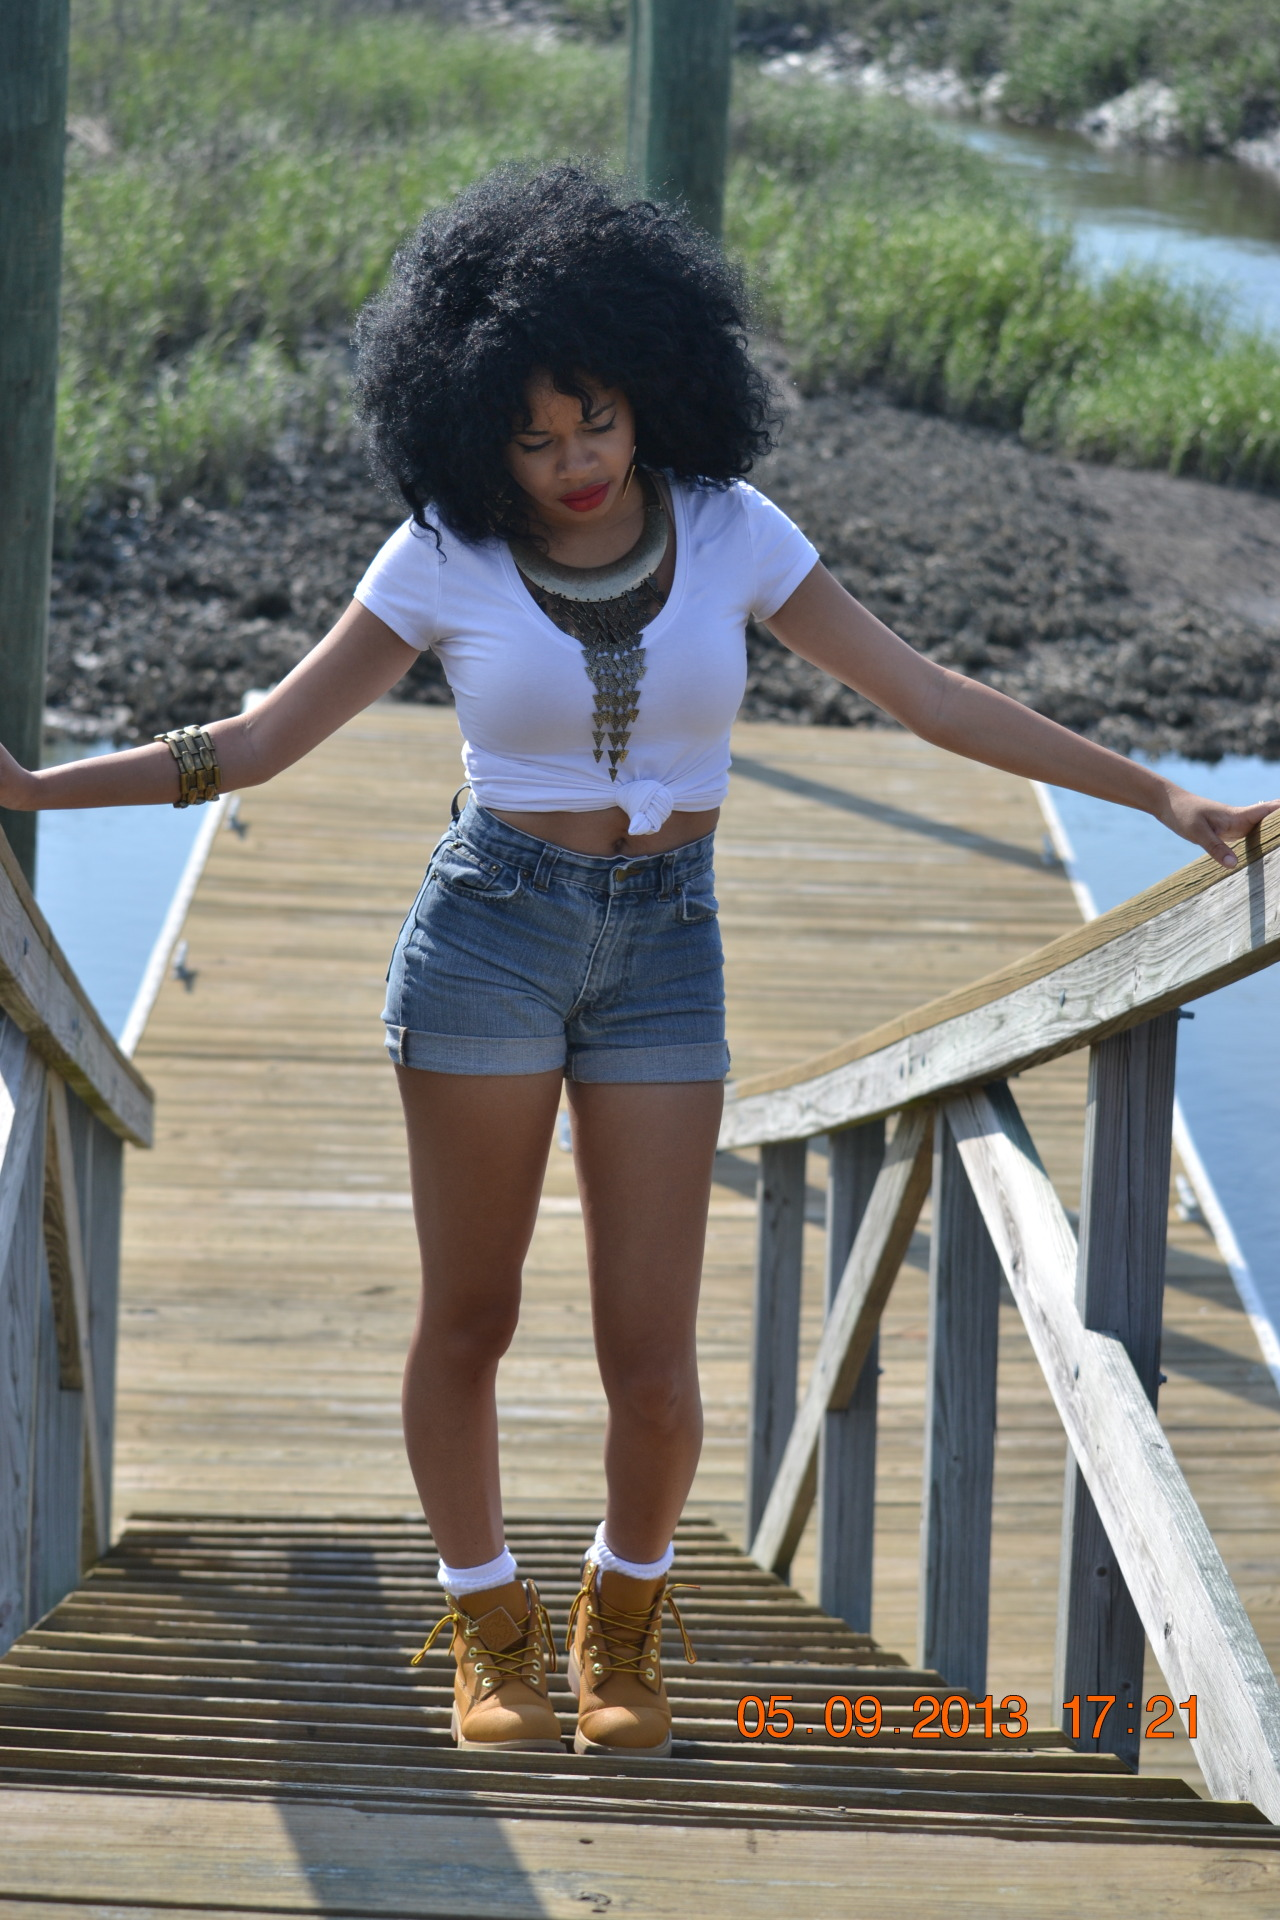 blackfashion:  Leona, 20, South Carolina tropicbombshell.tumblr.com IG: @tropicxstasy Photographed by: Melicent Lucas